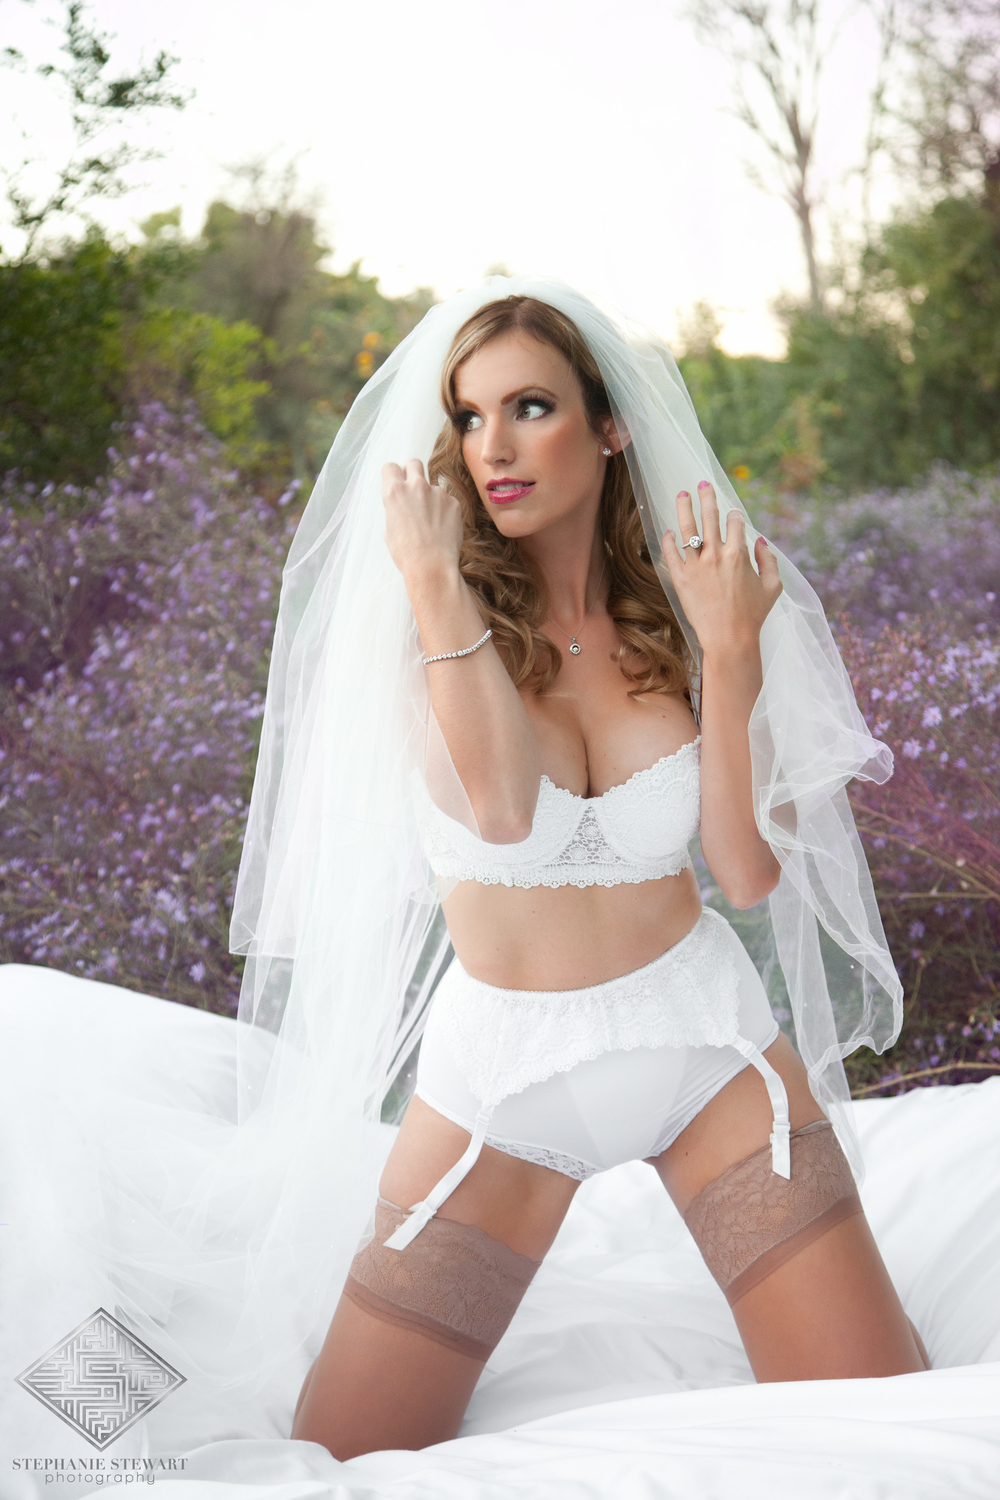 Bridal-Boudoir-High-Waisted-Veil-Wedding-Grooms-Gift-Outdoor-Purple-Flowers-Stephanie-Stewart-Photography-The-Diamond-Supplier-Albuquerque-Stephanie-Stewart-Photography-NBExclusive